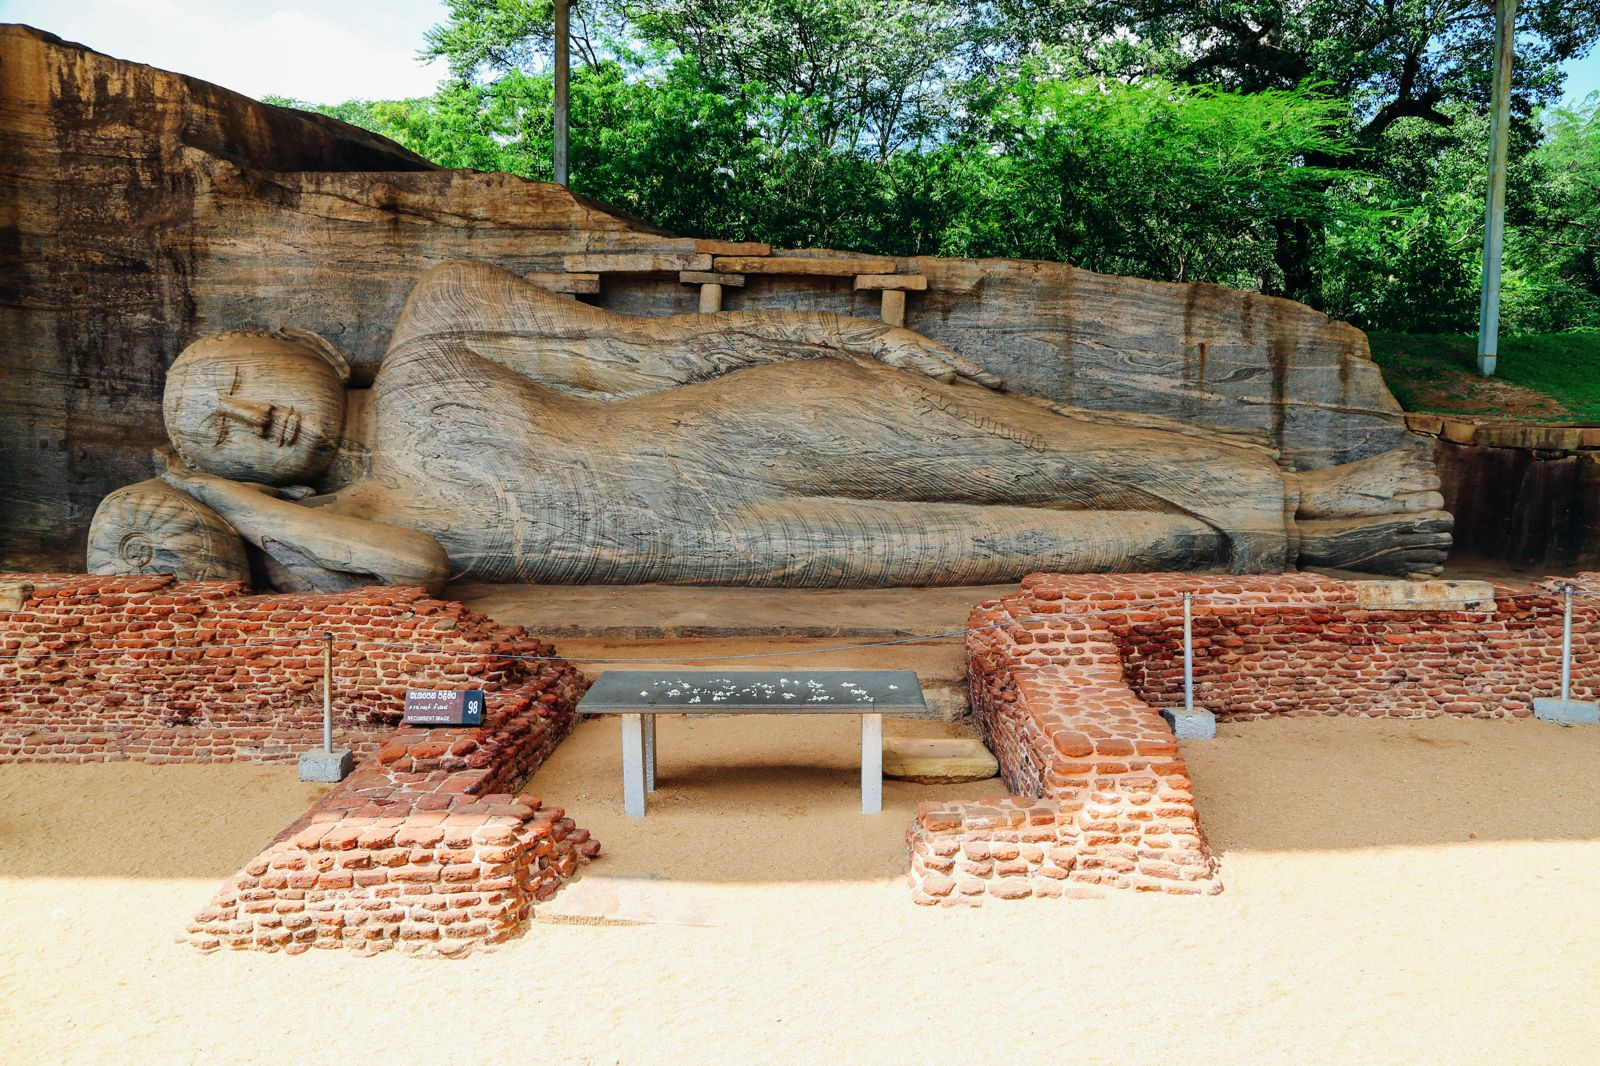 The Ancient City Of Polonnaruwa In Sri Lanka // Part 2 Of 2 (31)